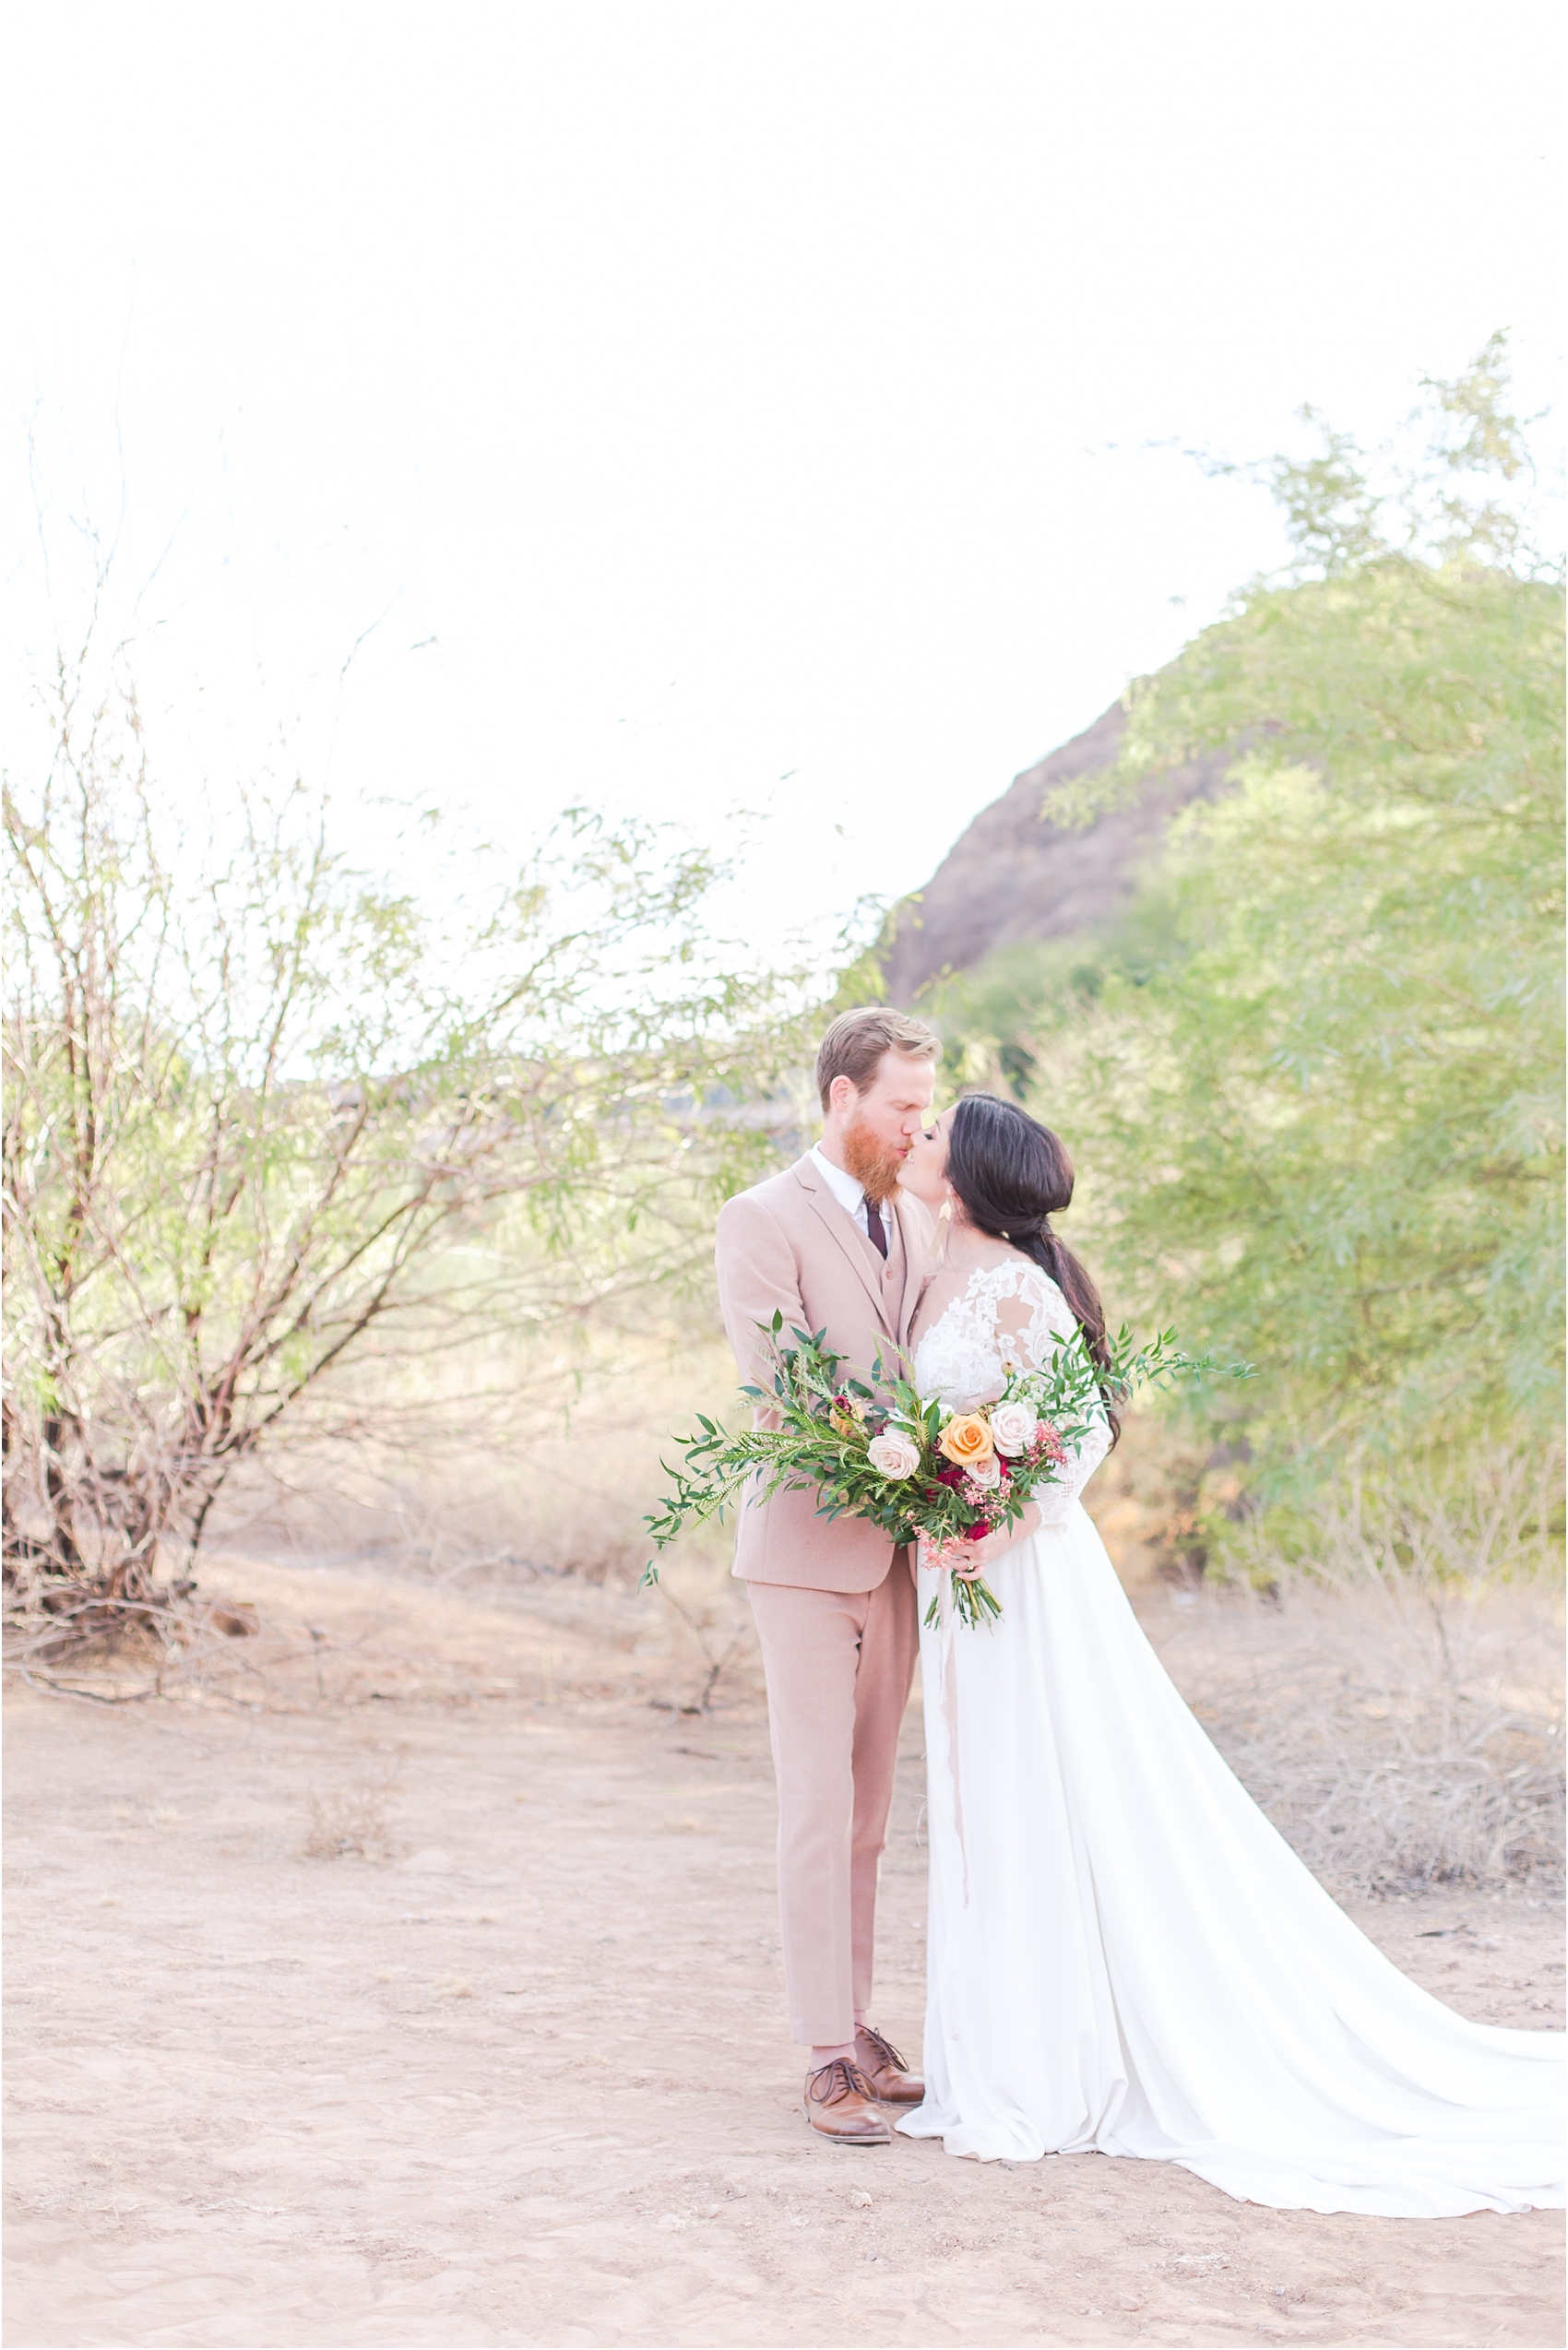 intimate-and-romantic-desert-wedding-photos-at-phoenix-marriott-tempe-at-the-buttes-in-tempe-arizona-by-courtney-carolyn-photography_0037.jpg